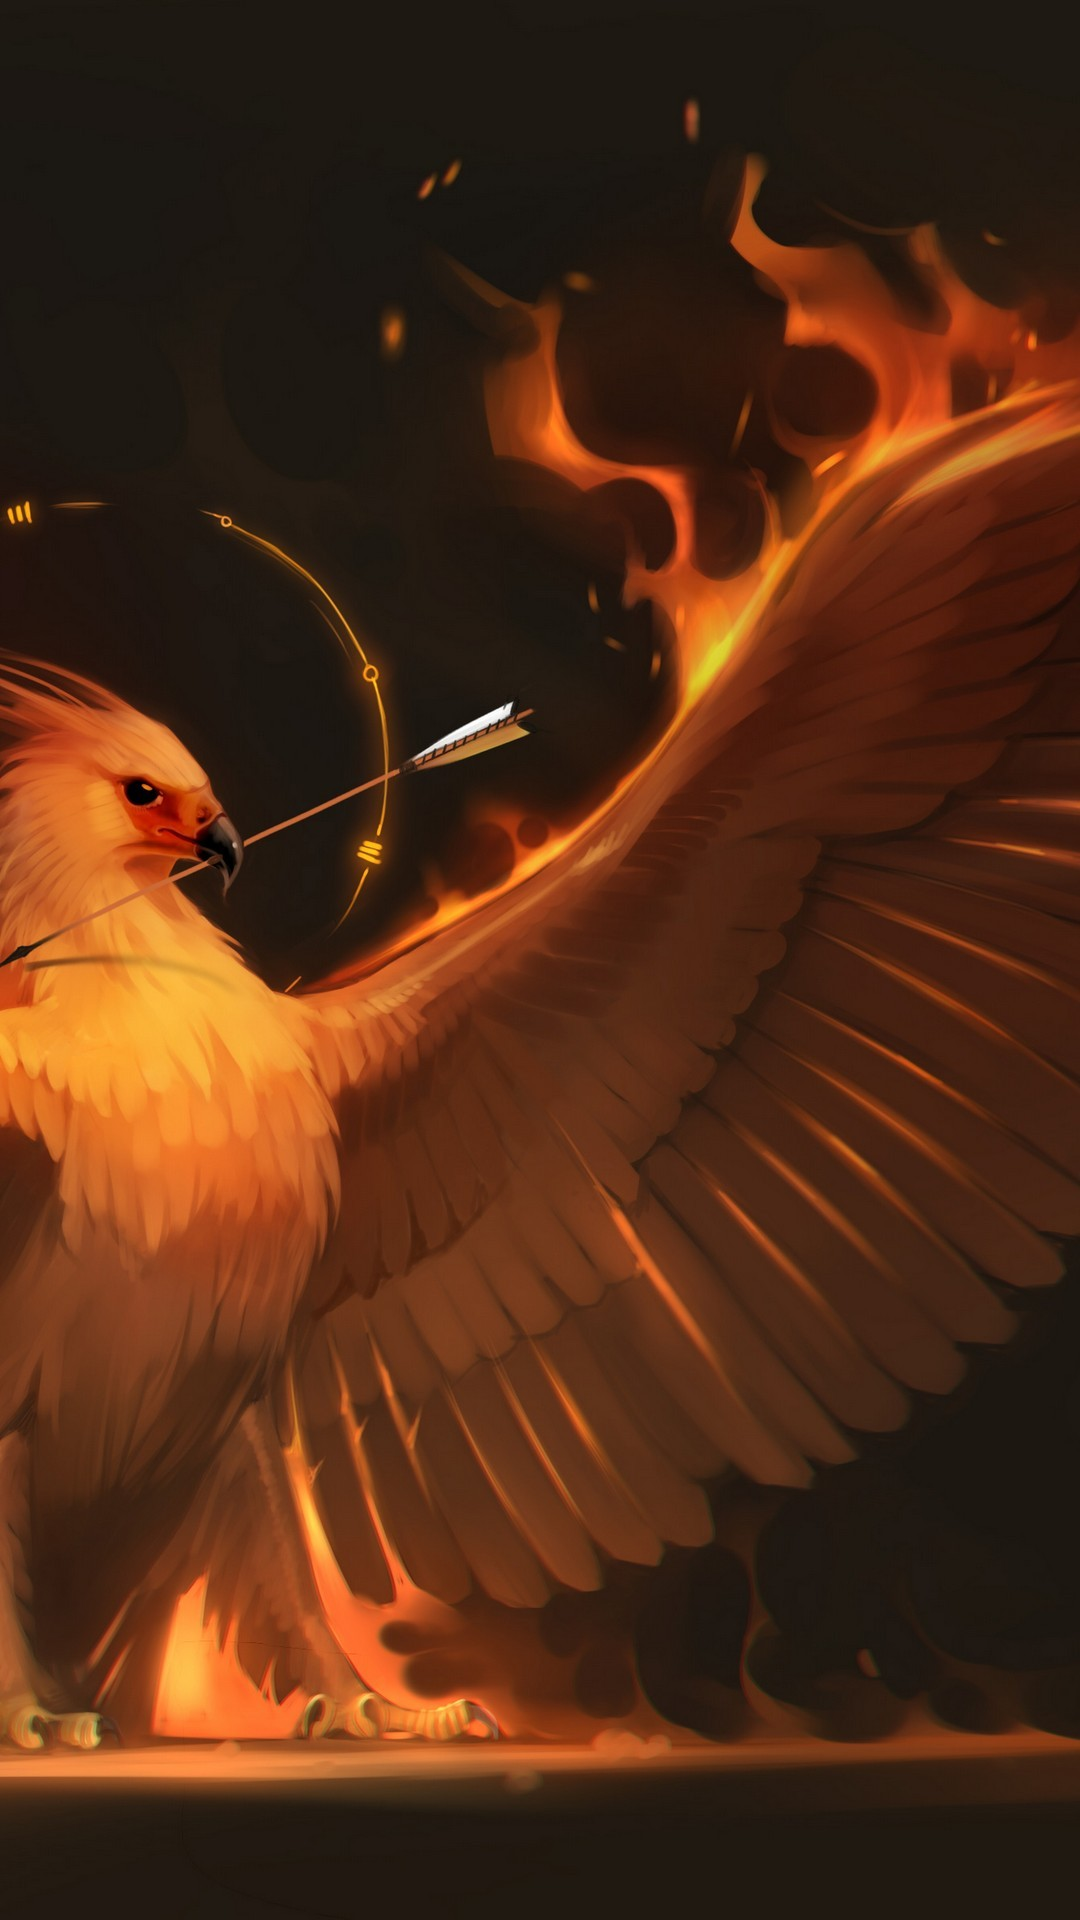 Phoenix Bird HD Wallpapers For Android   2019 Android Wallpapers 1080x1920